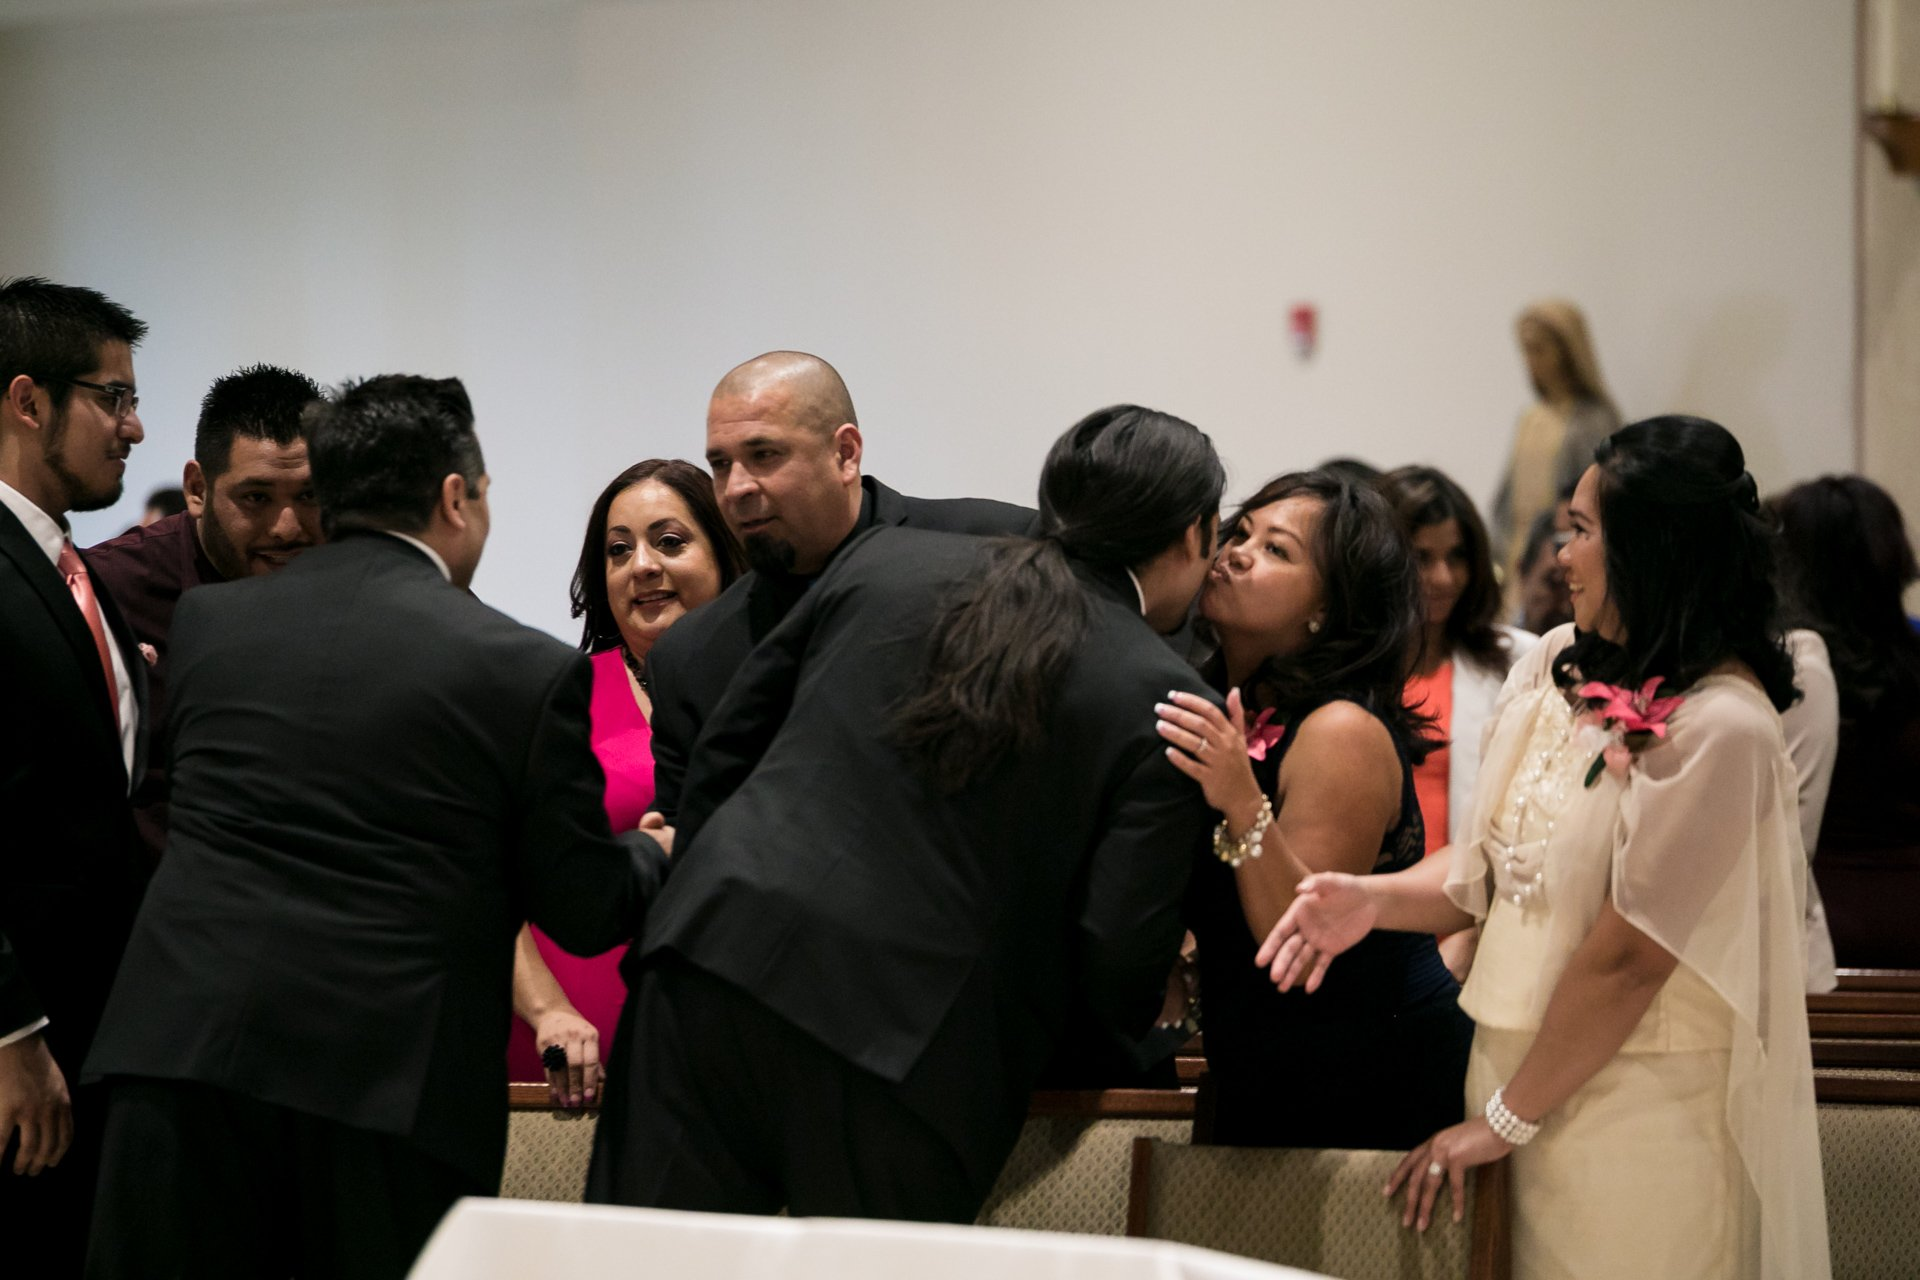 couple at receiving line during ceremony